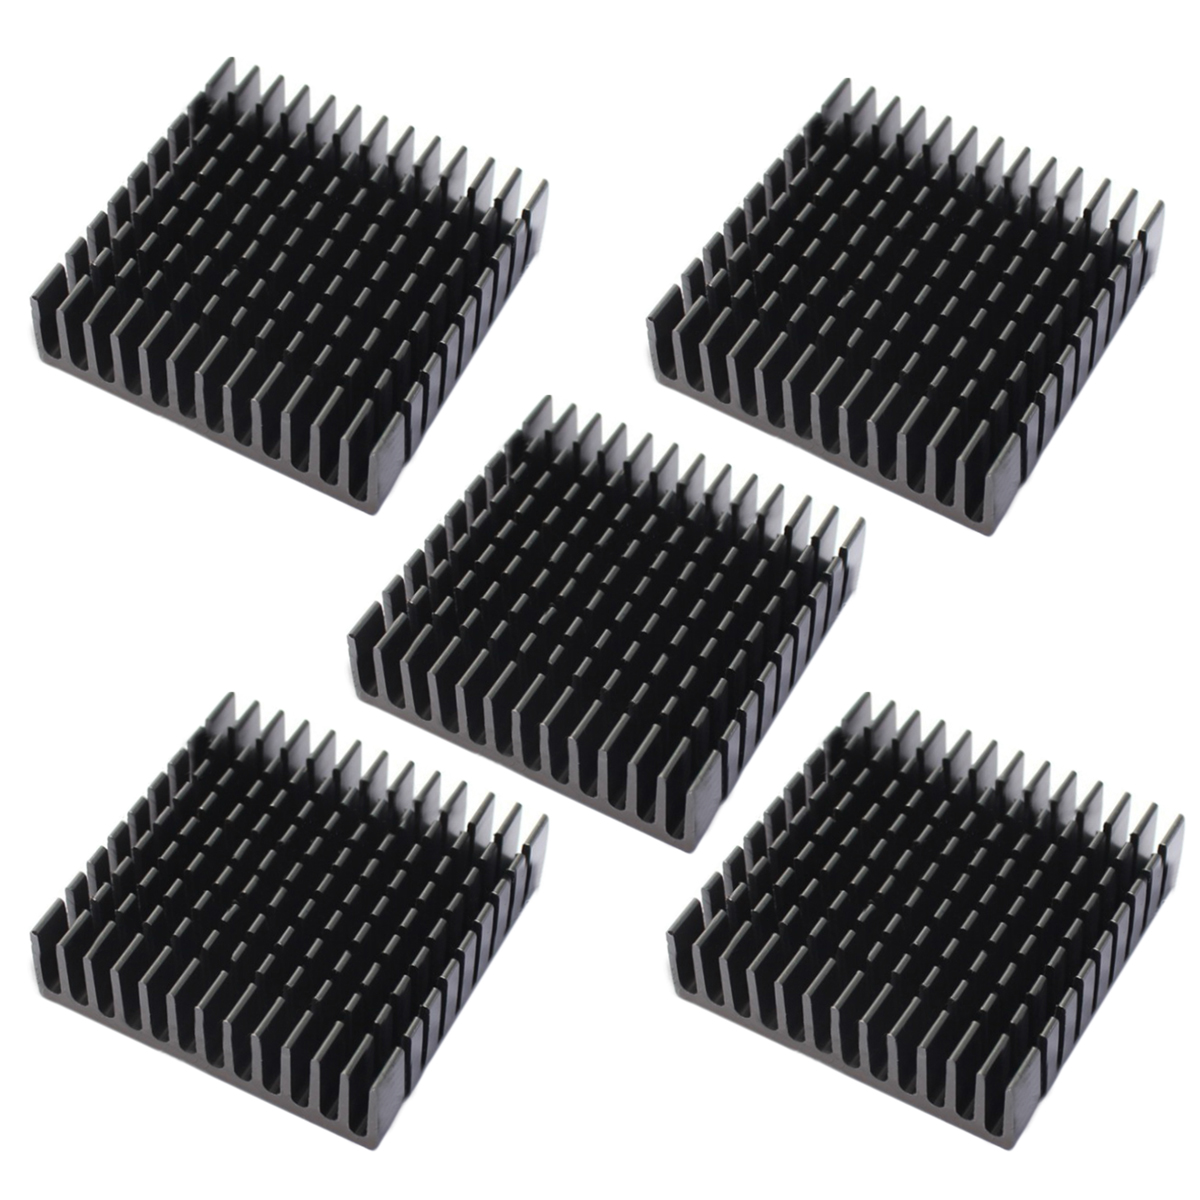 5pcs Black Heat Sink Mayitr Electronic Heat Dissipation Cooling Aluminum Heatsink For LED Power Transistor 40*40*11mm jeyi cooling warship copper m 2 heatsink nvme heat sink ngff m 2 2280 aluminum sheet thermal conductivity silicon wafer cooling